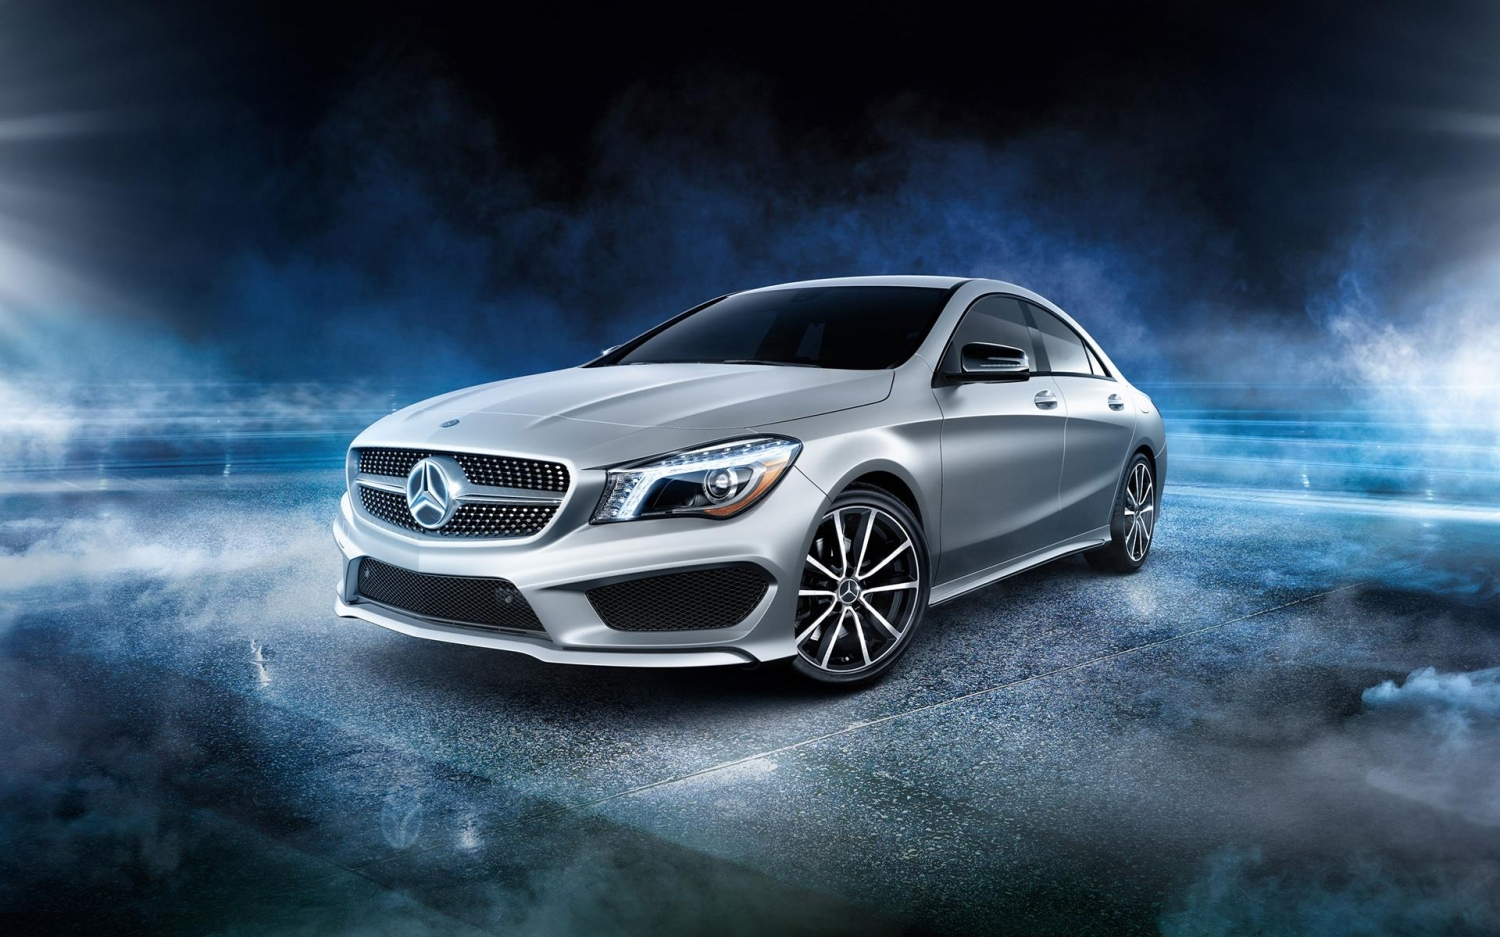 2016 Mercedes Benz CLA Class Wallpapers [HD]   DriveSpark 1500x937